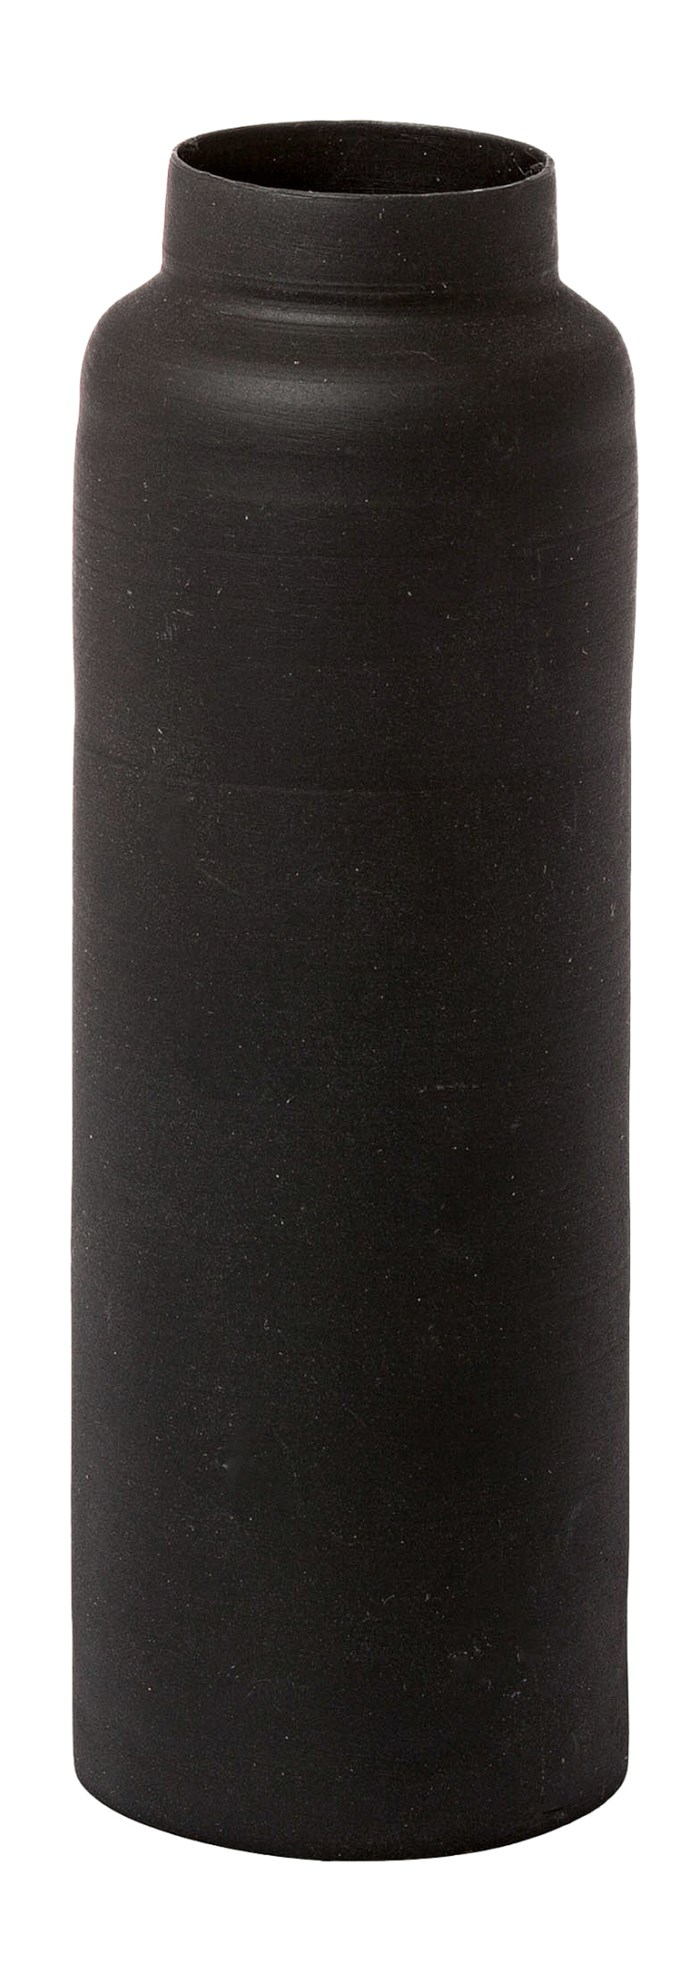 10\. Bottle vase in matte black, $19, from [Zakkia](http://www.zakkia.com.au/).